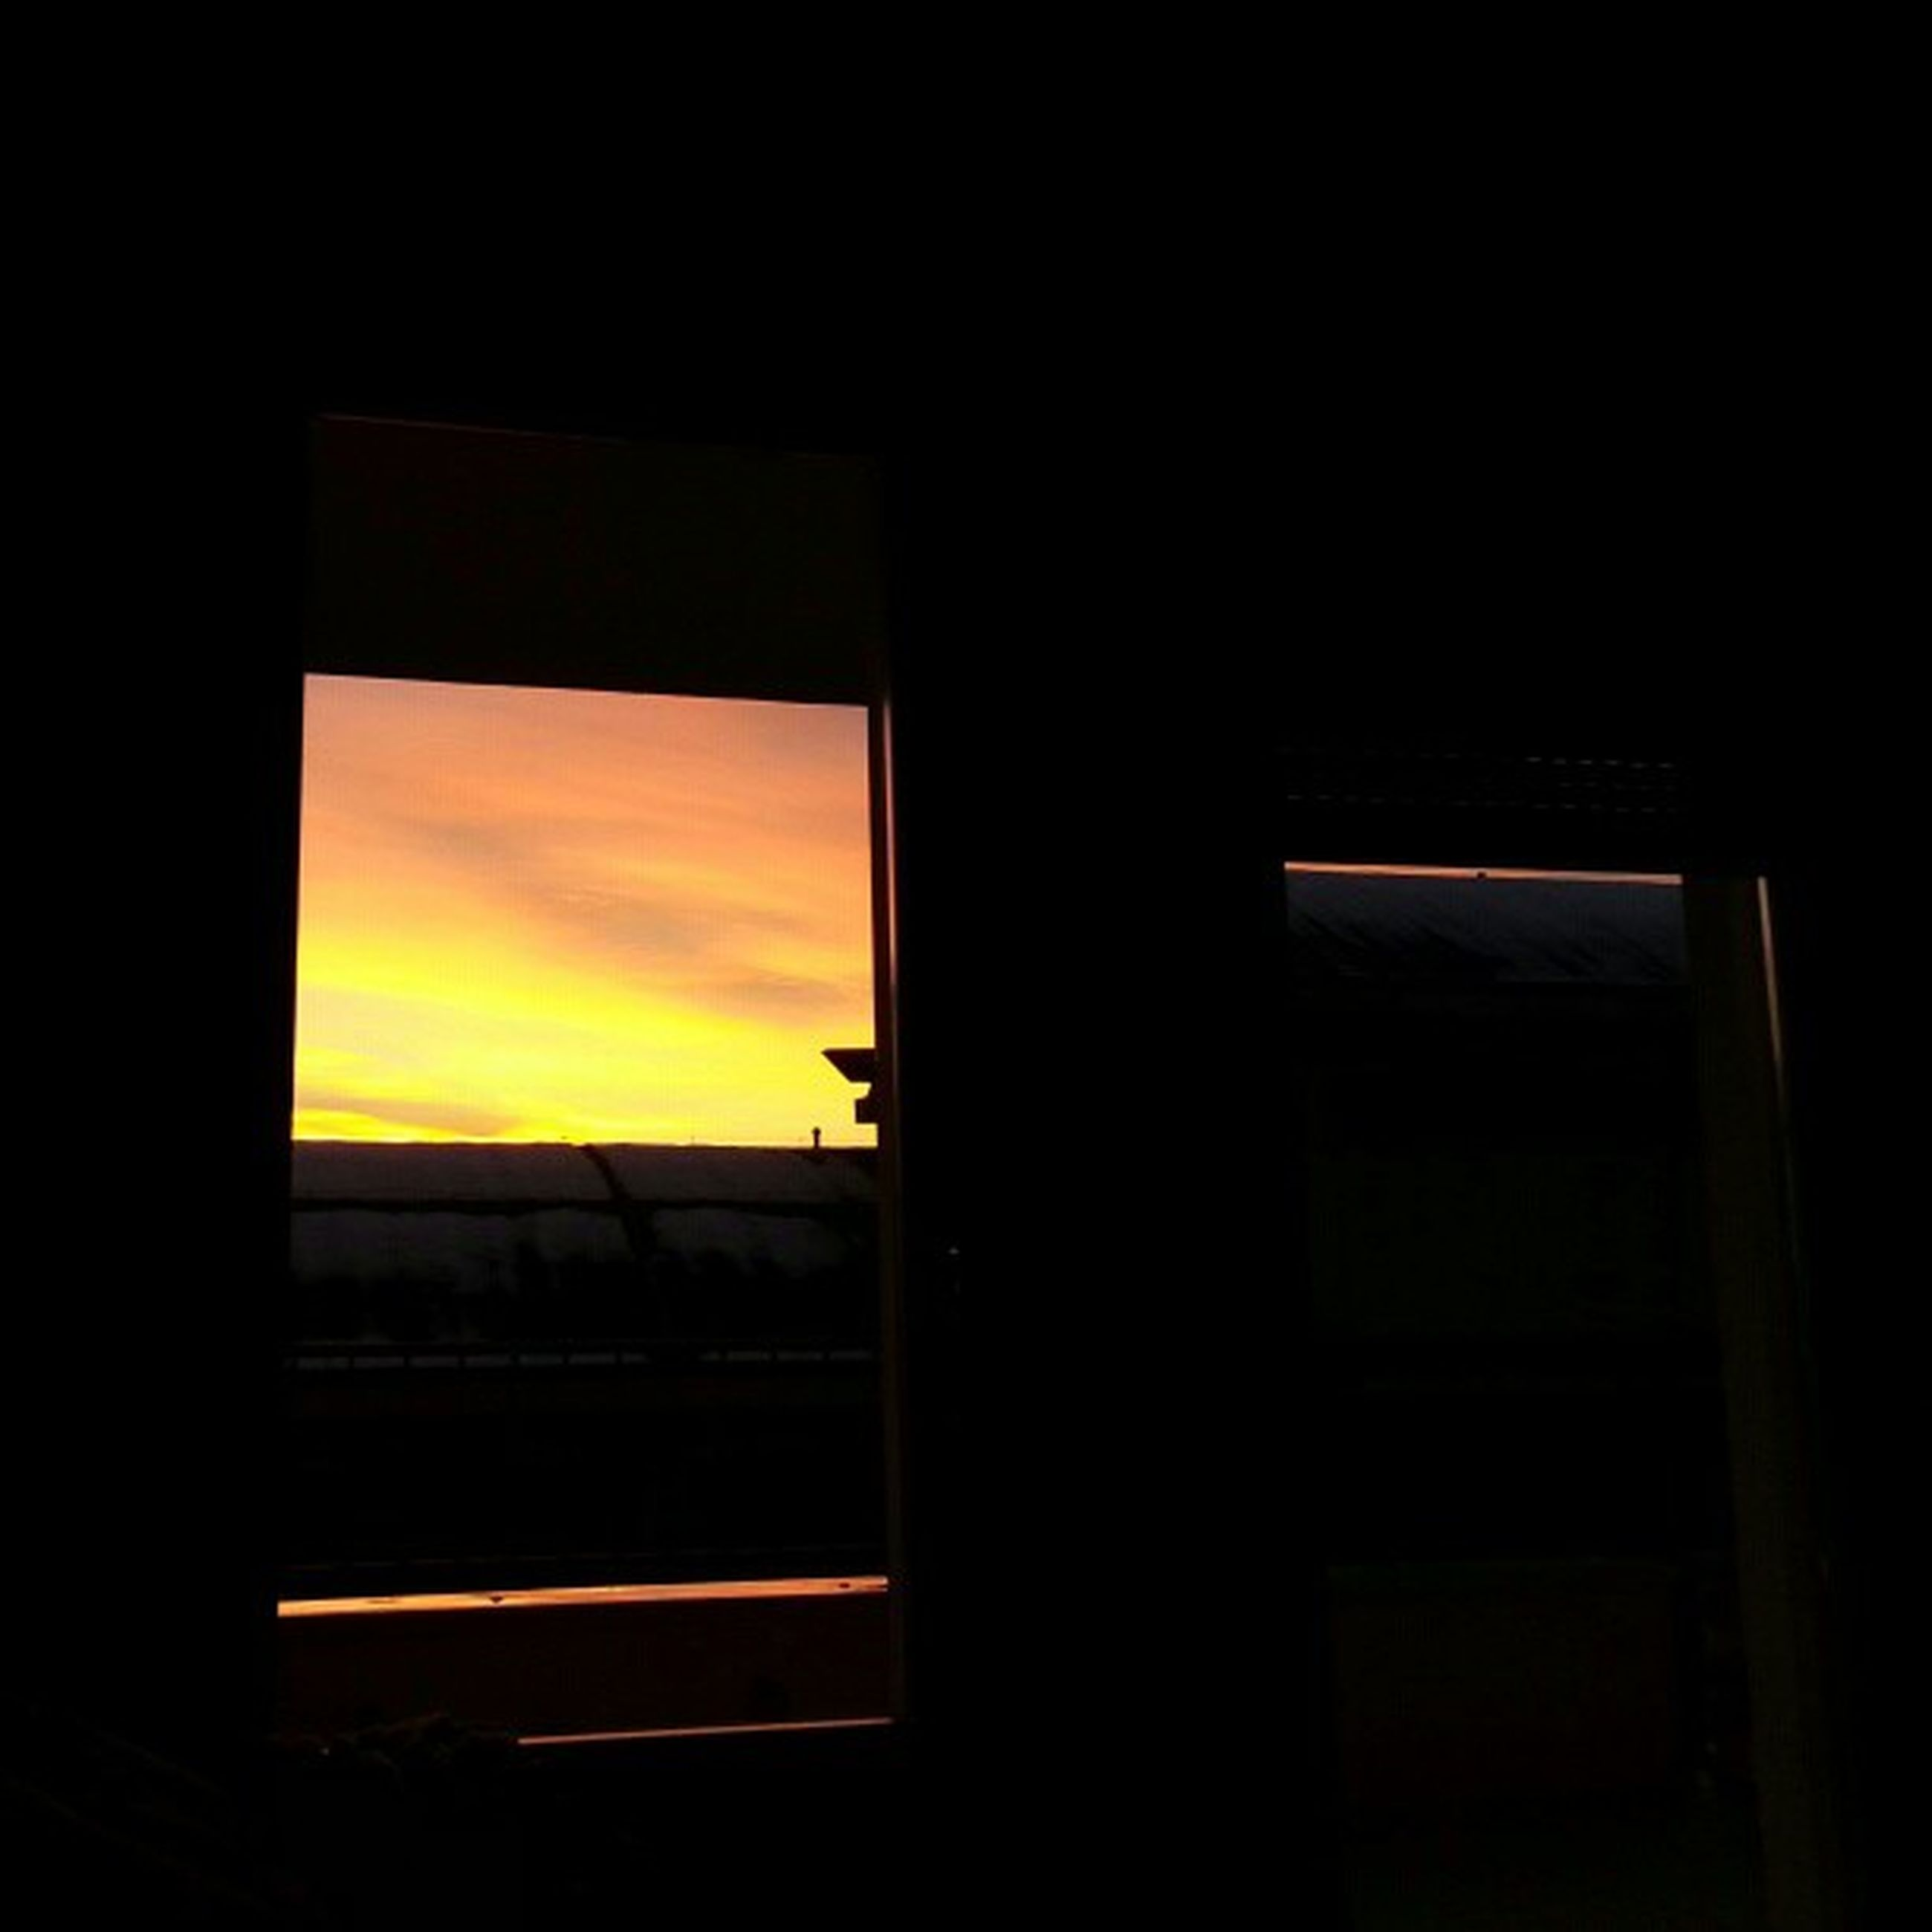 window, indoors, sunset, glass - material, transportation, transparent, sky, silhouette, vehicle interior, dark, mode of transport, looking through window, built structure, architecture, cloud - sky, orange color, car, no people, land vehicle, airplane